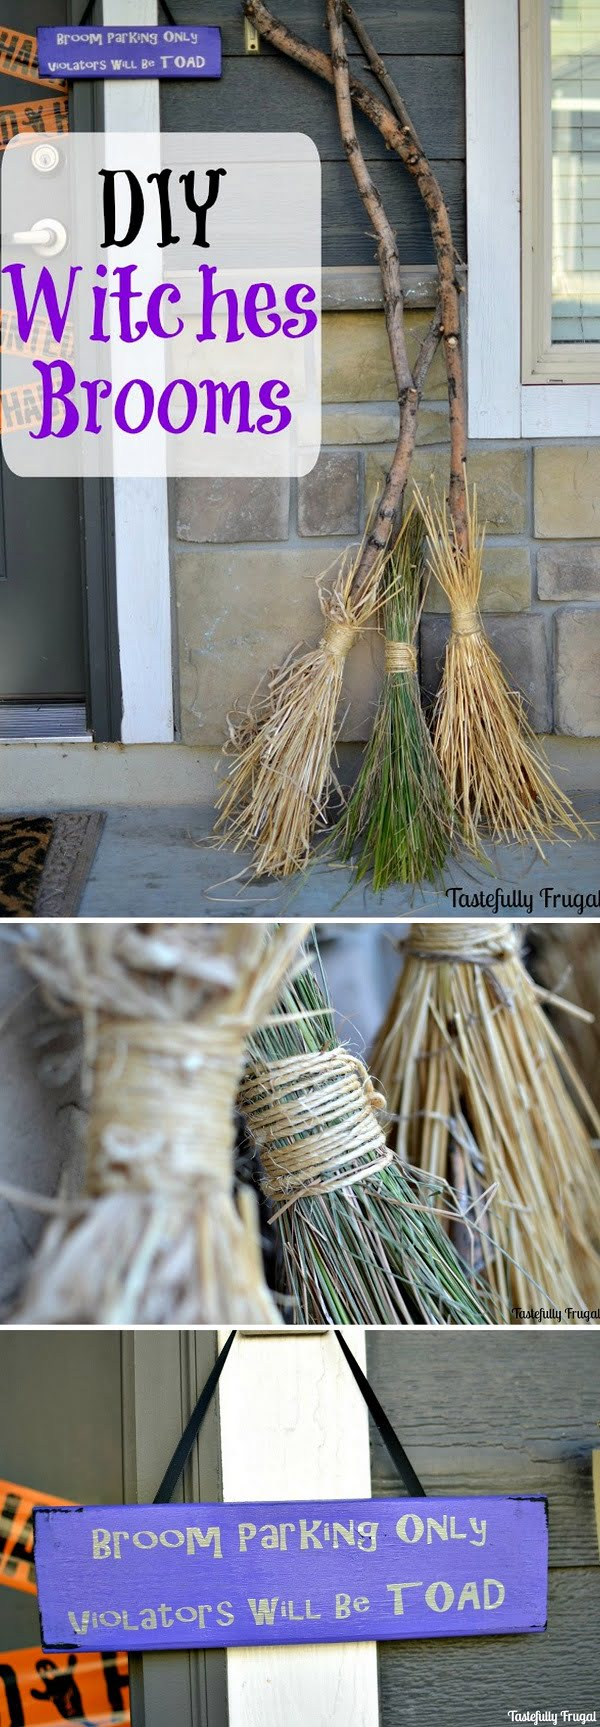 Check out the tutorial on how to make DIY witches brooms for Halloween home decoration